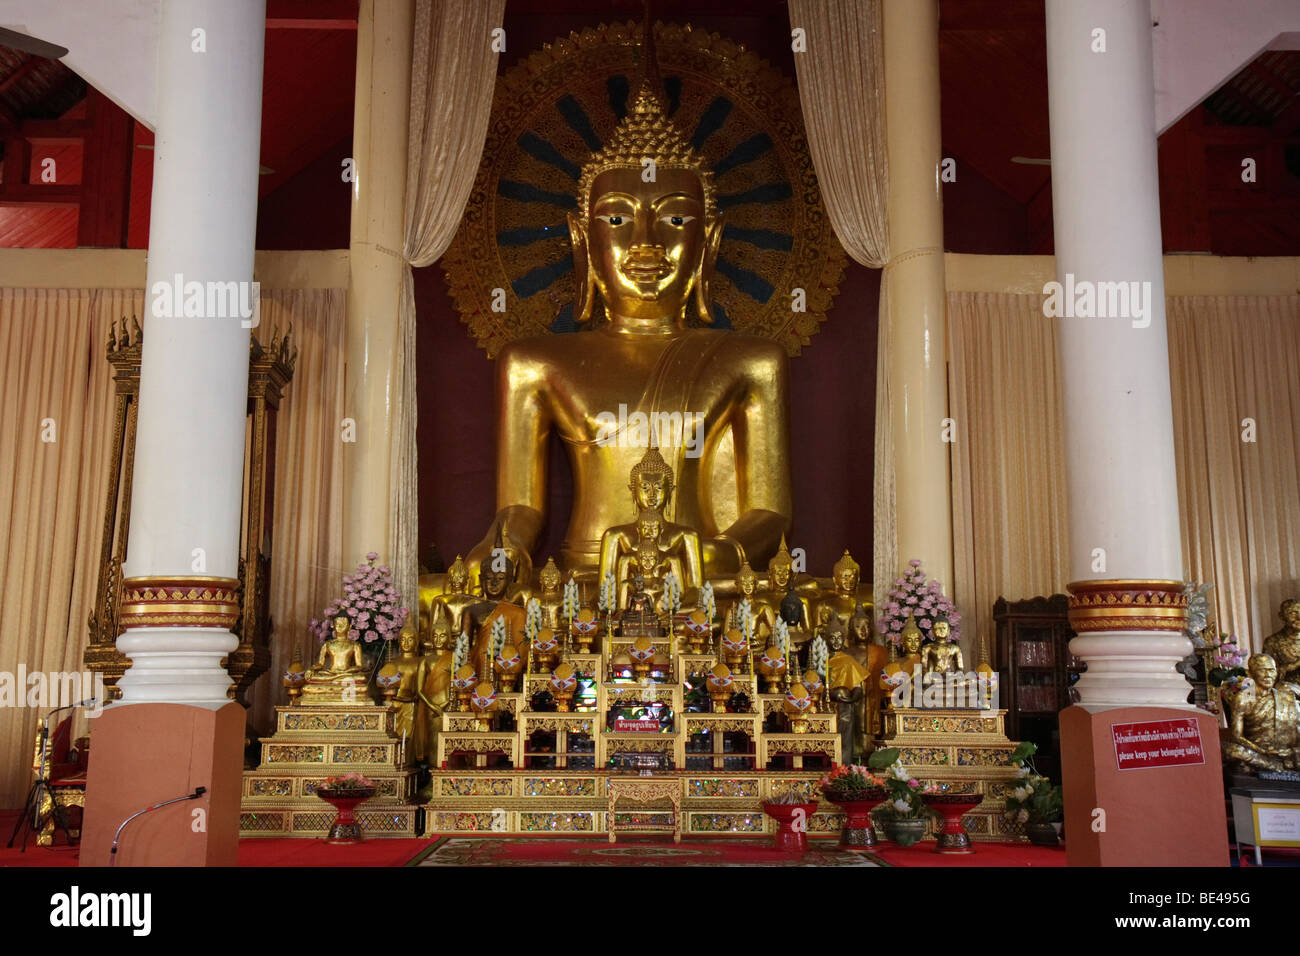 Buddha statues of various sizes, Wat Phra Sing, Chiang Mai, Northern Thailand, Thailand, Asia - Stock Image